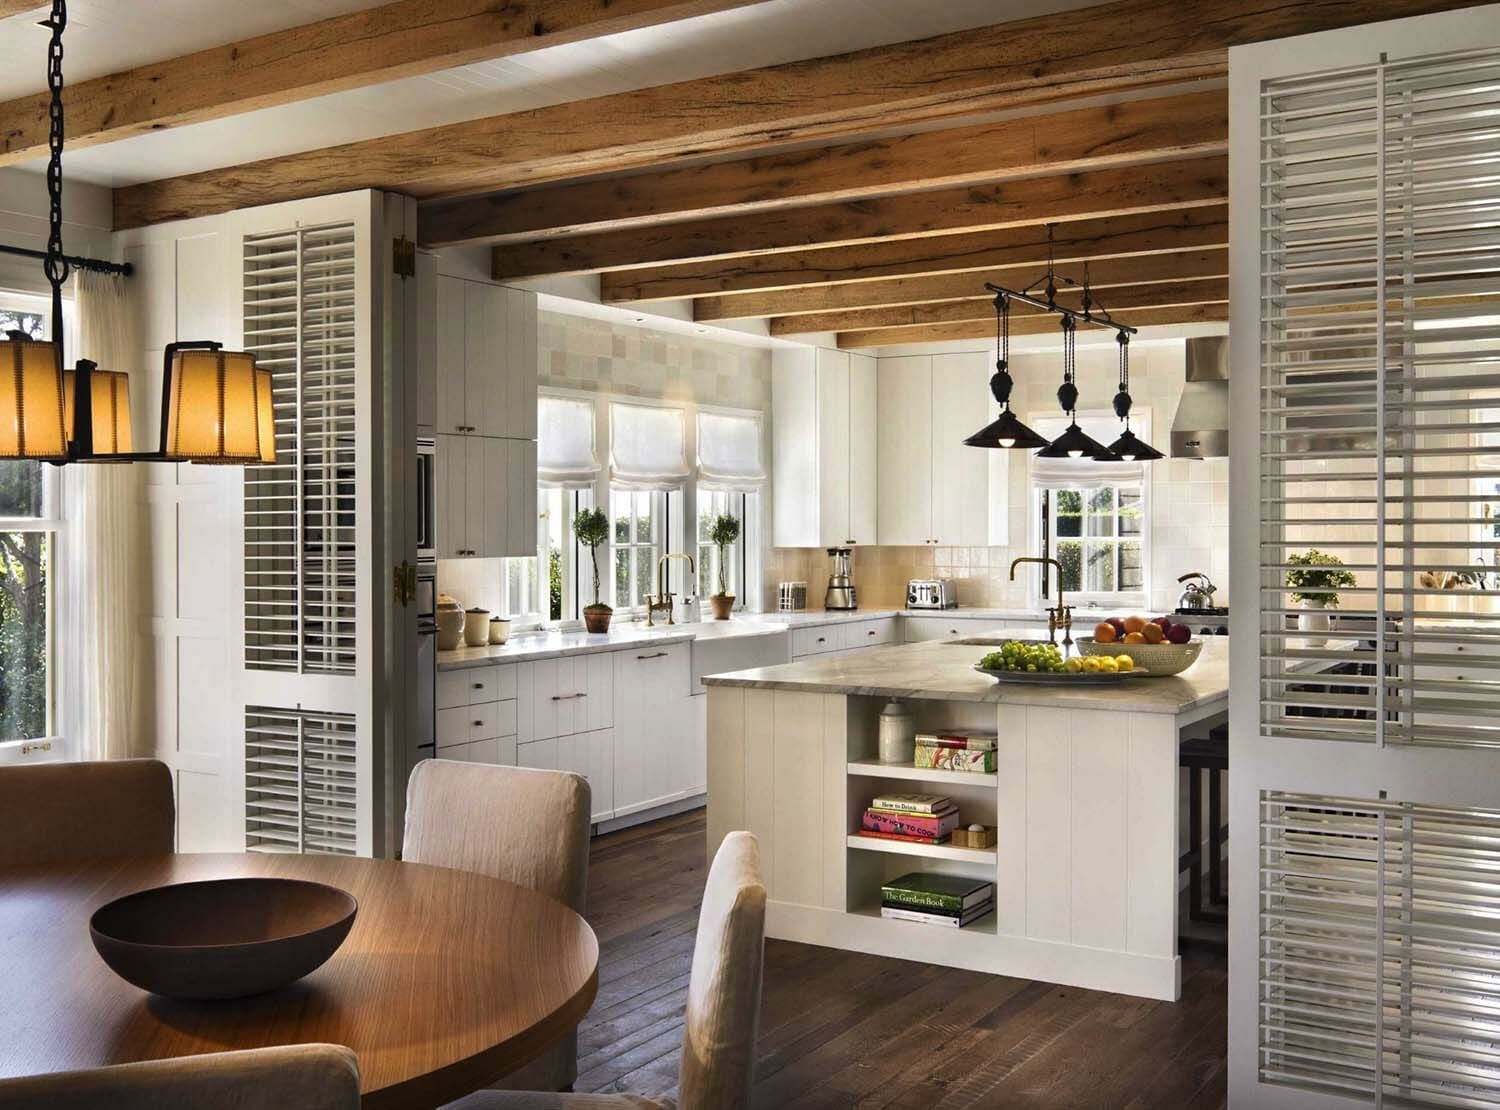 Dreamy Beachfront Hideaway In Nantucket Designed For Family Living